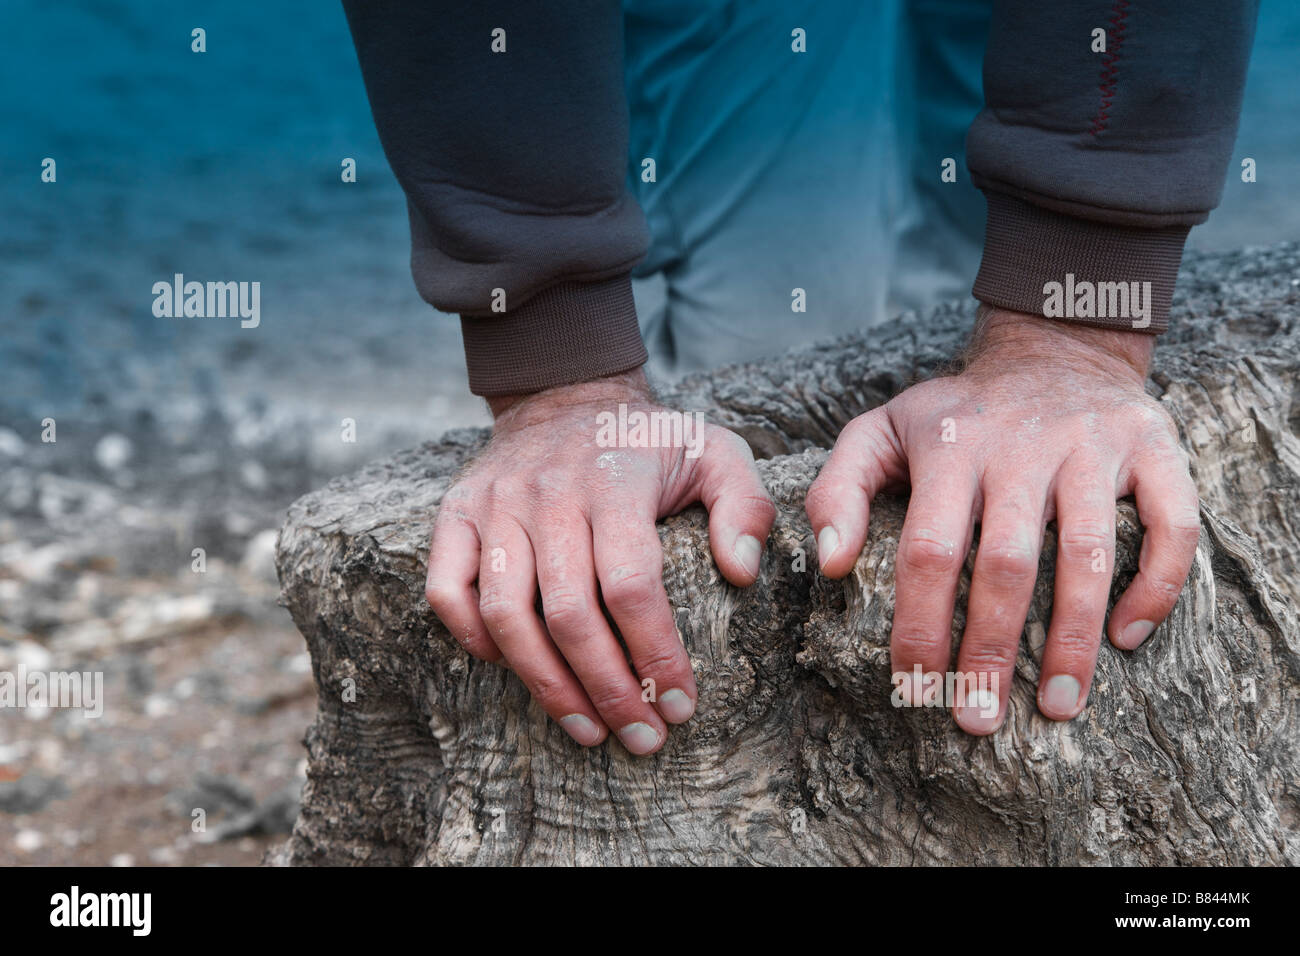 Two hands of a man leaning on a tree stump - Stock Image